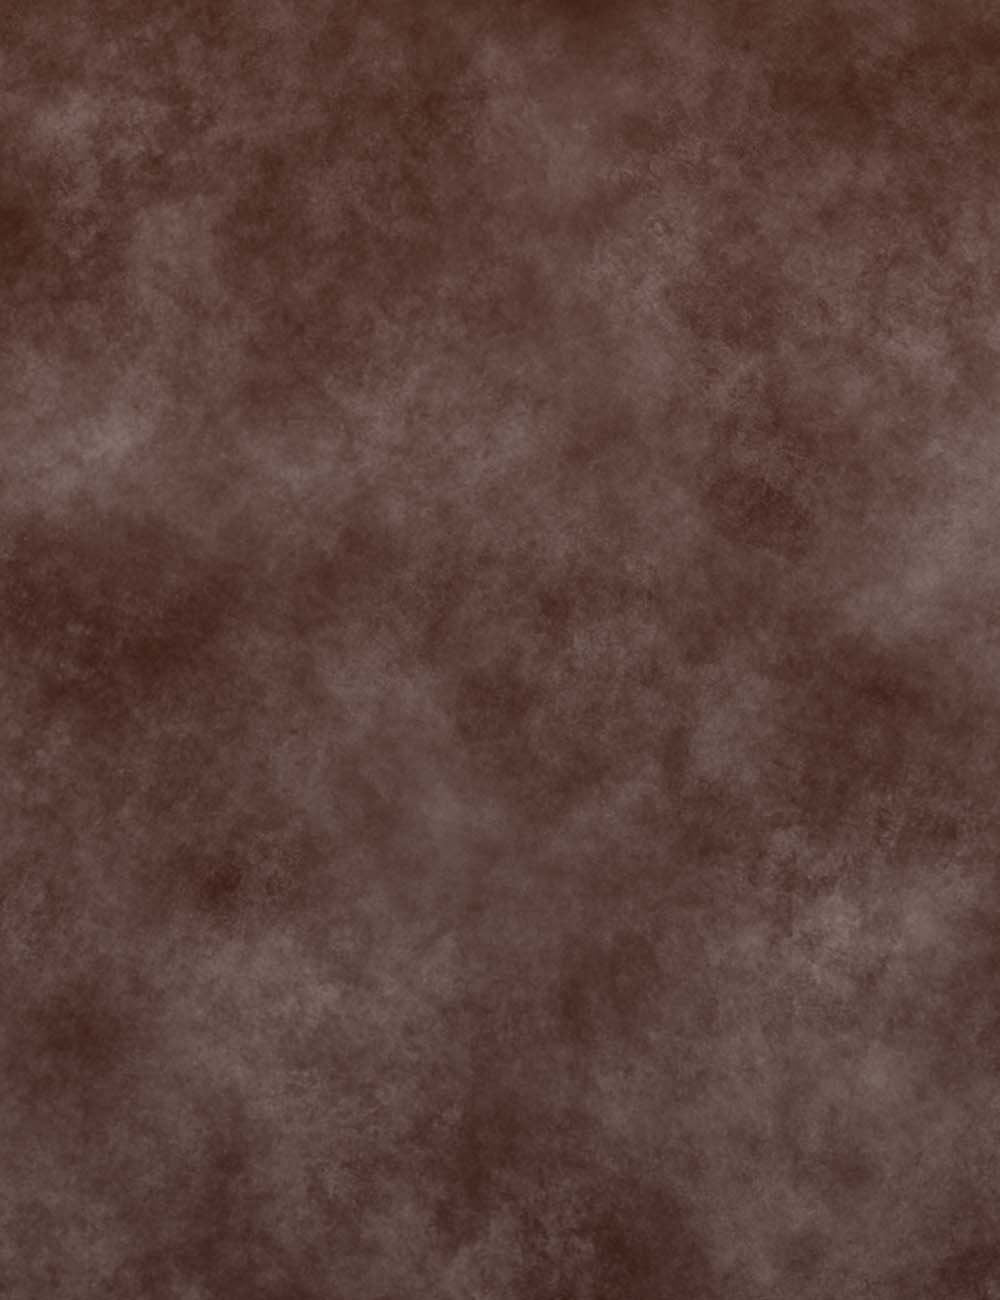 Abstract Red Brown Texture Backdrop For Photography - Shop Backdrop